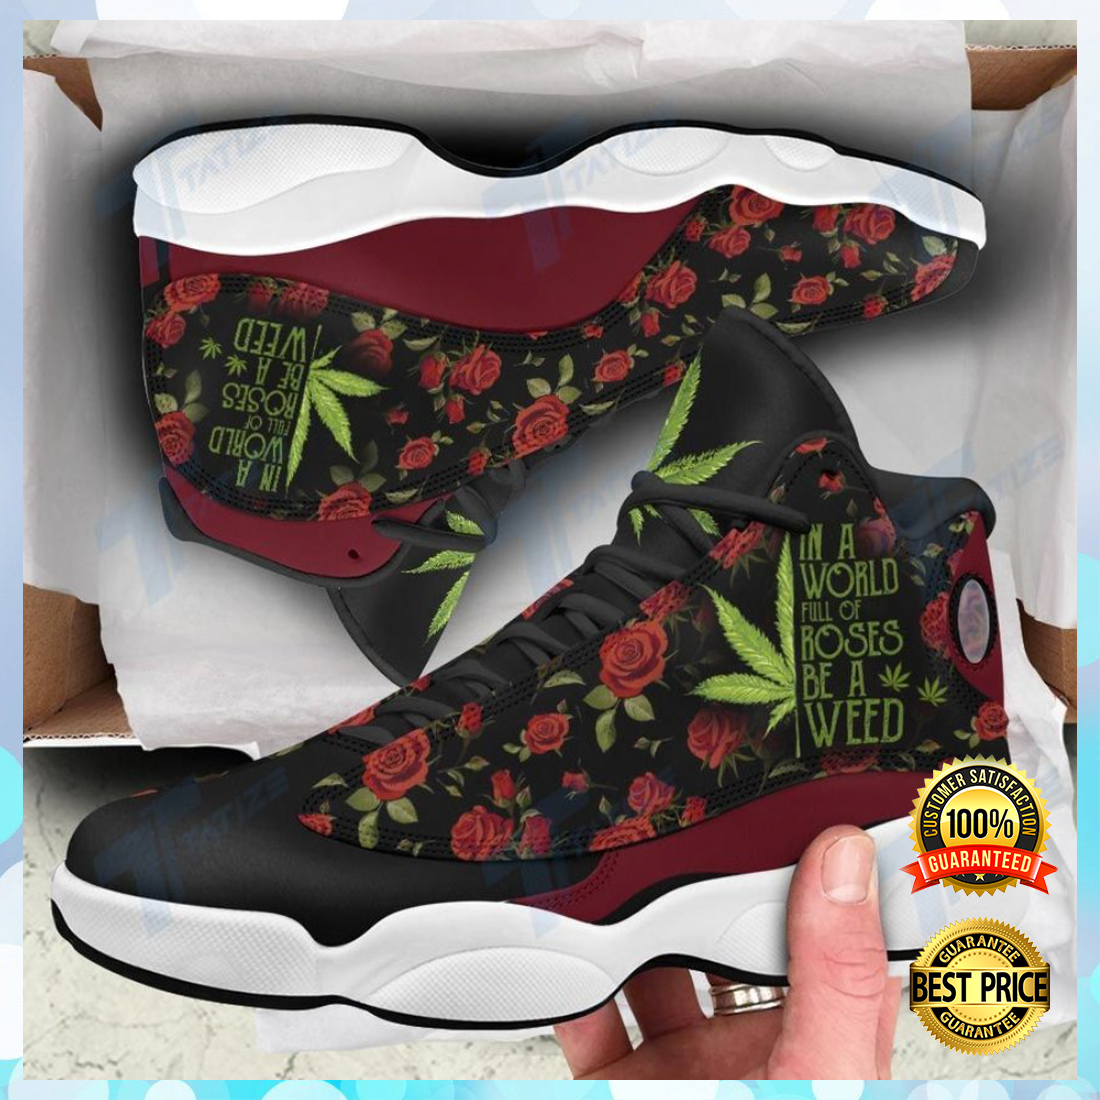 In a world full of roses be a weed Jordan 13 sneaker 4